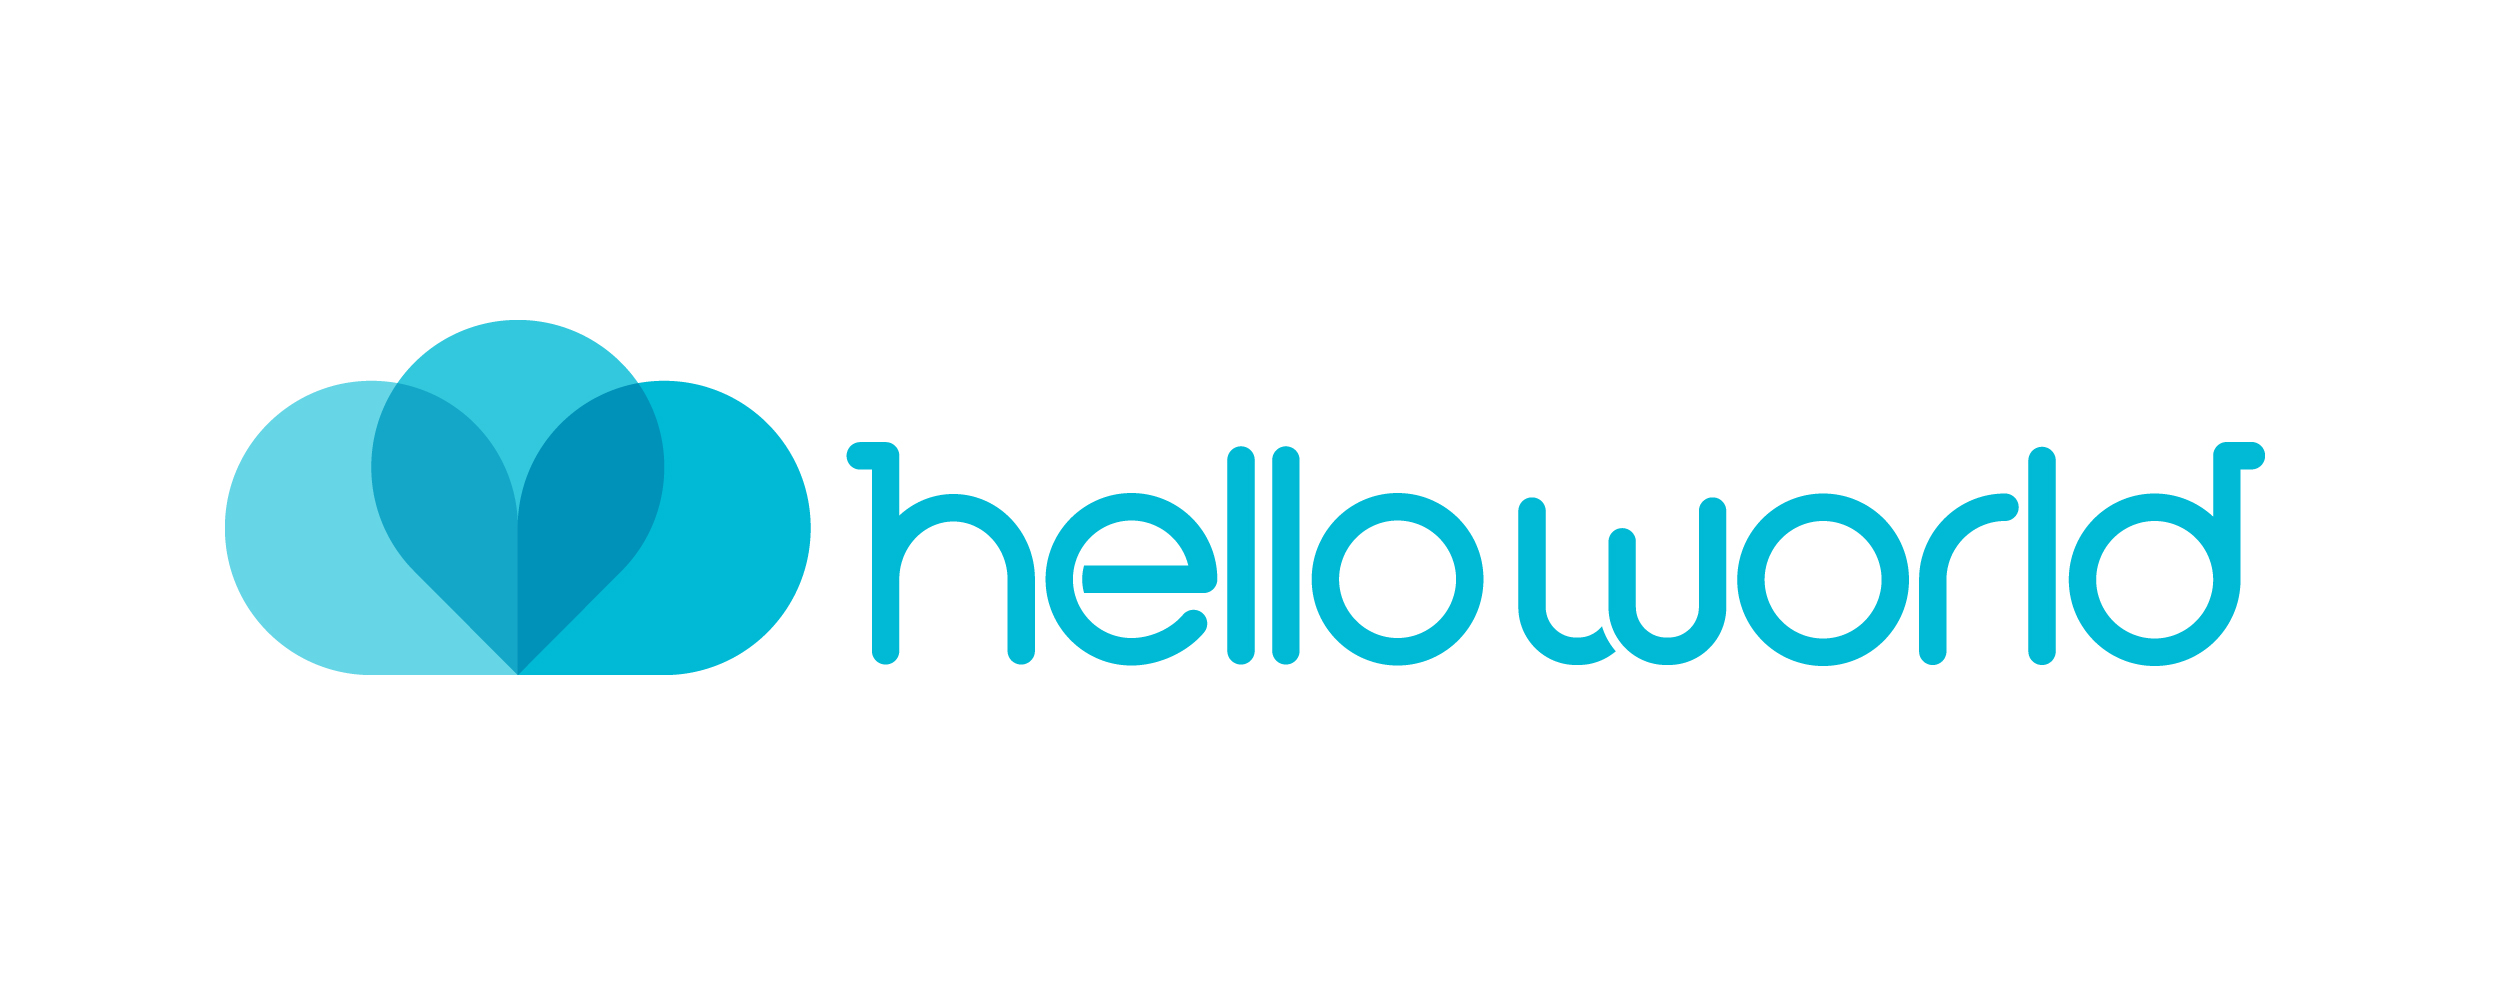 ... Helloworld Travel · Inbound DMC · Airport Operations · Virgin Galactic  · About · Contact.